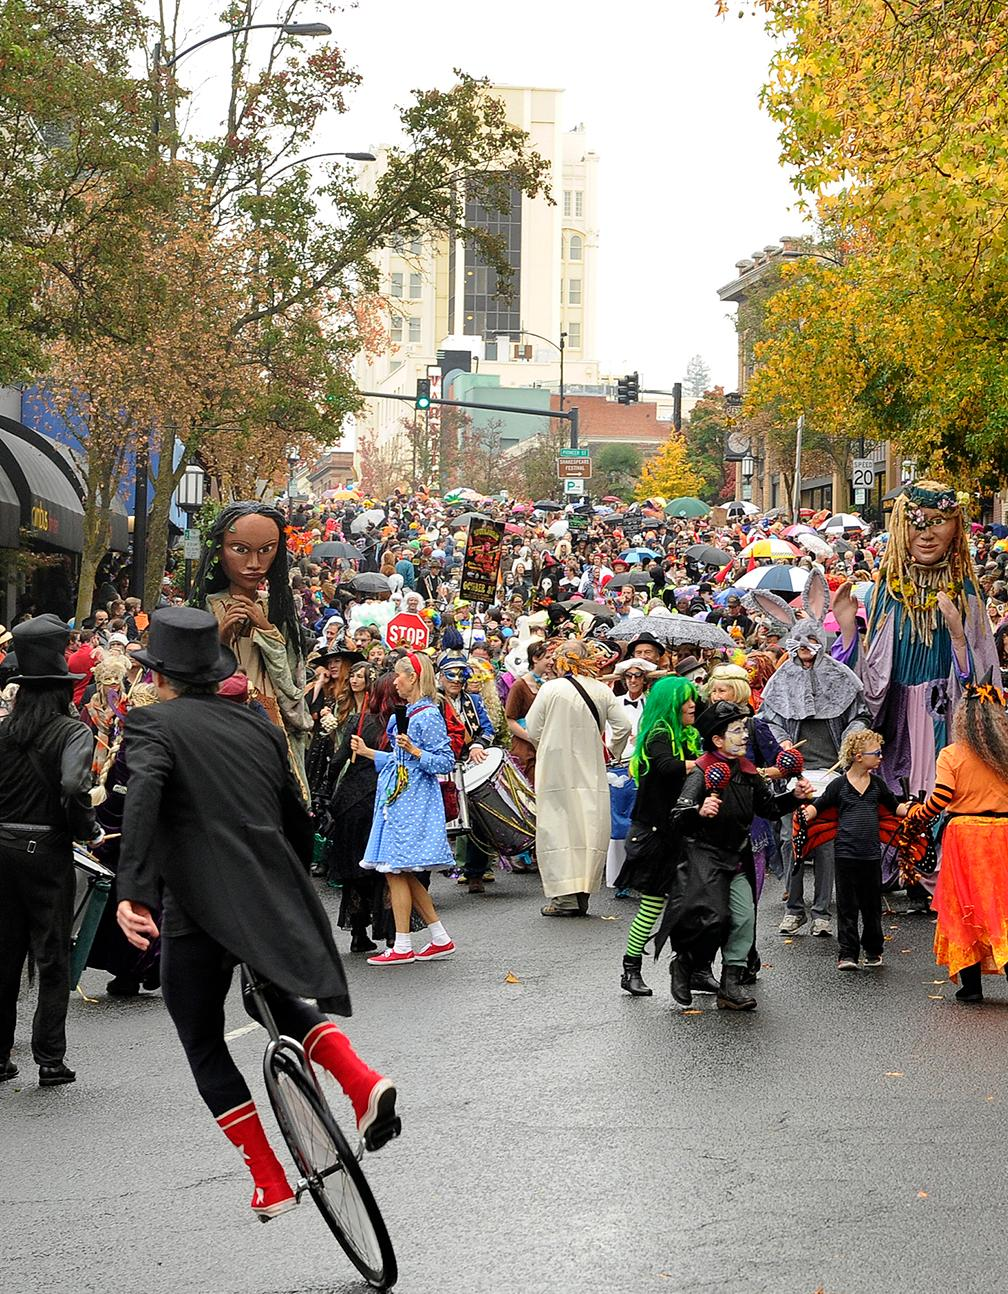 Andy Atkinson / Daily Tidings<br>The annual Halloween parade makes its way through downtown Wednesday afternoon.